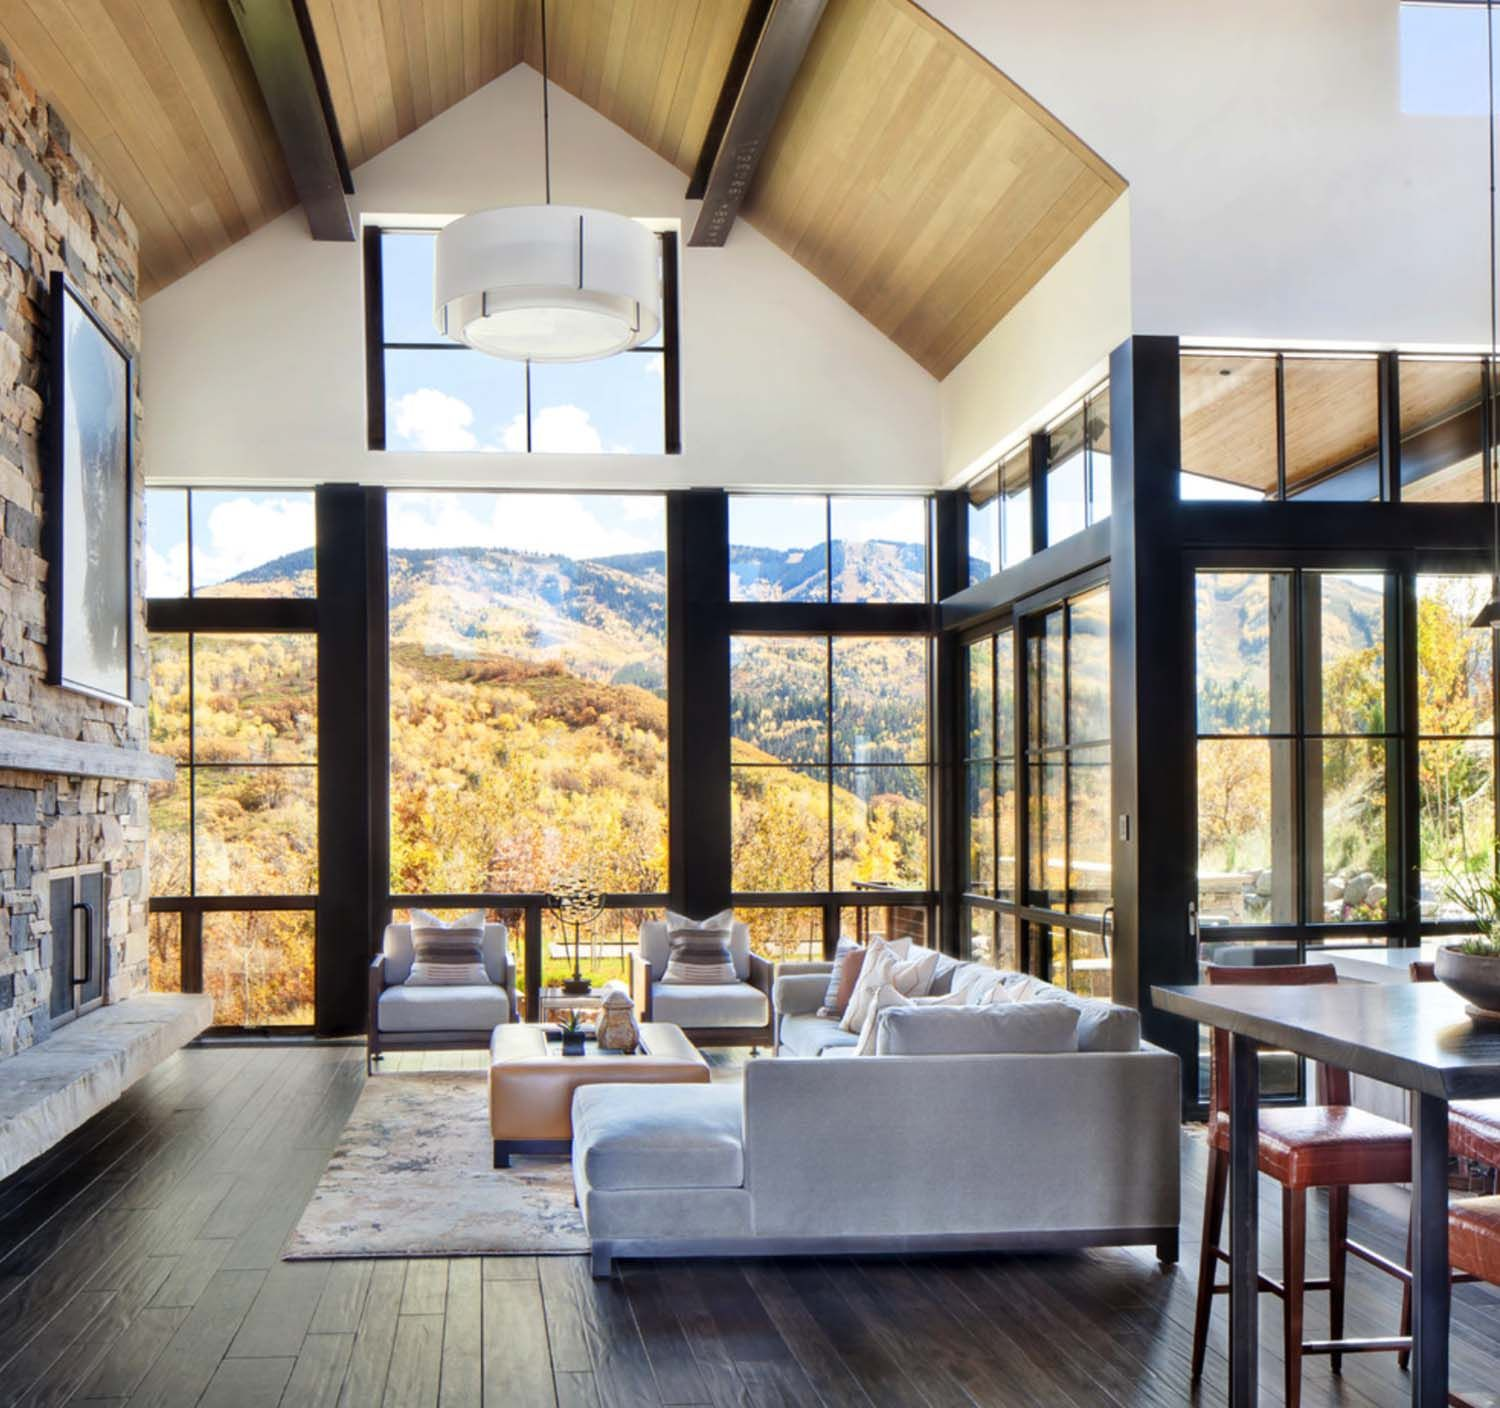 40 most popular articles featured on one kindesign for on modern cozy mountain home design ideas id=32733